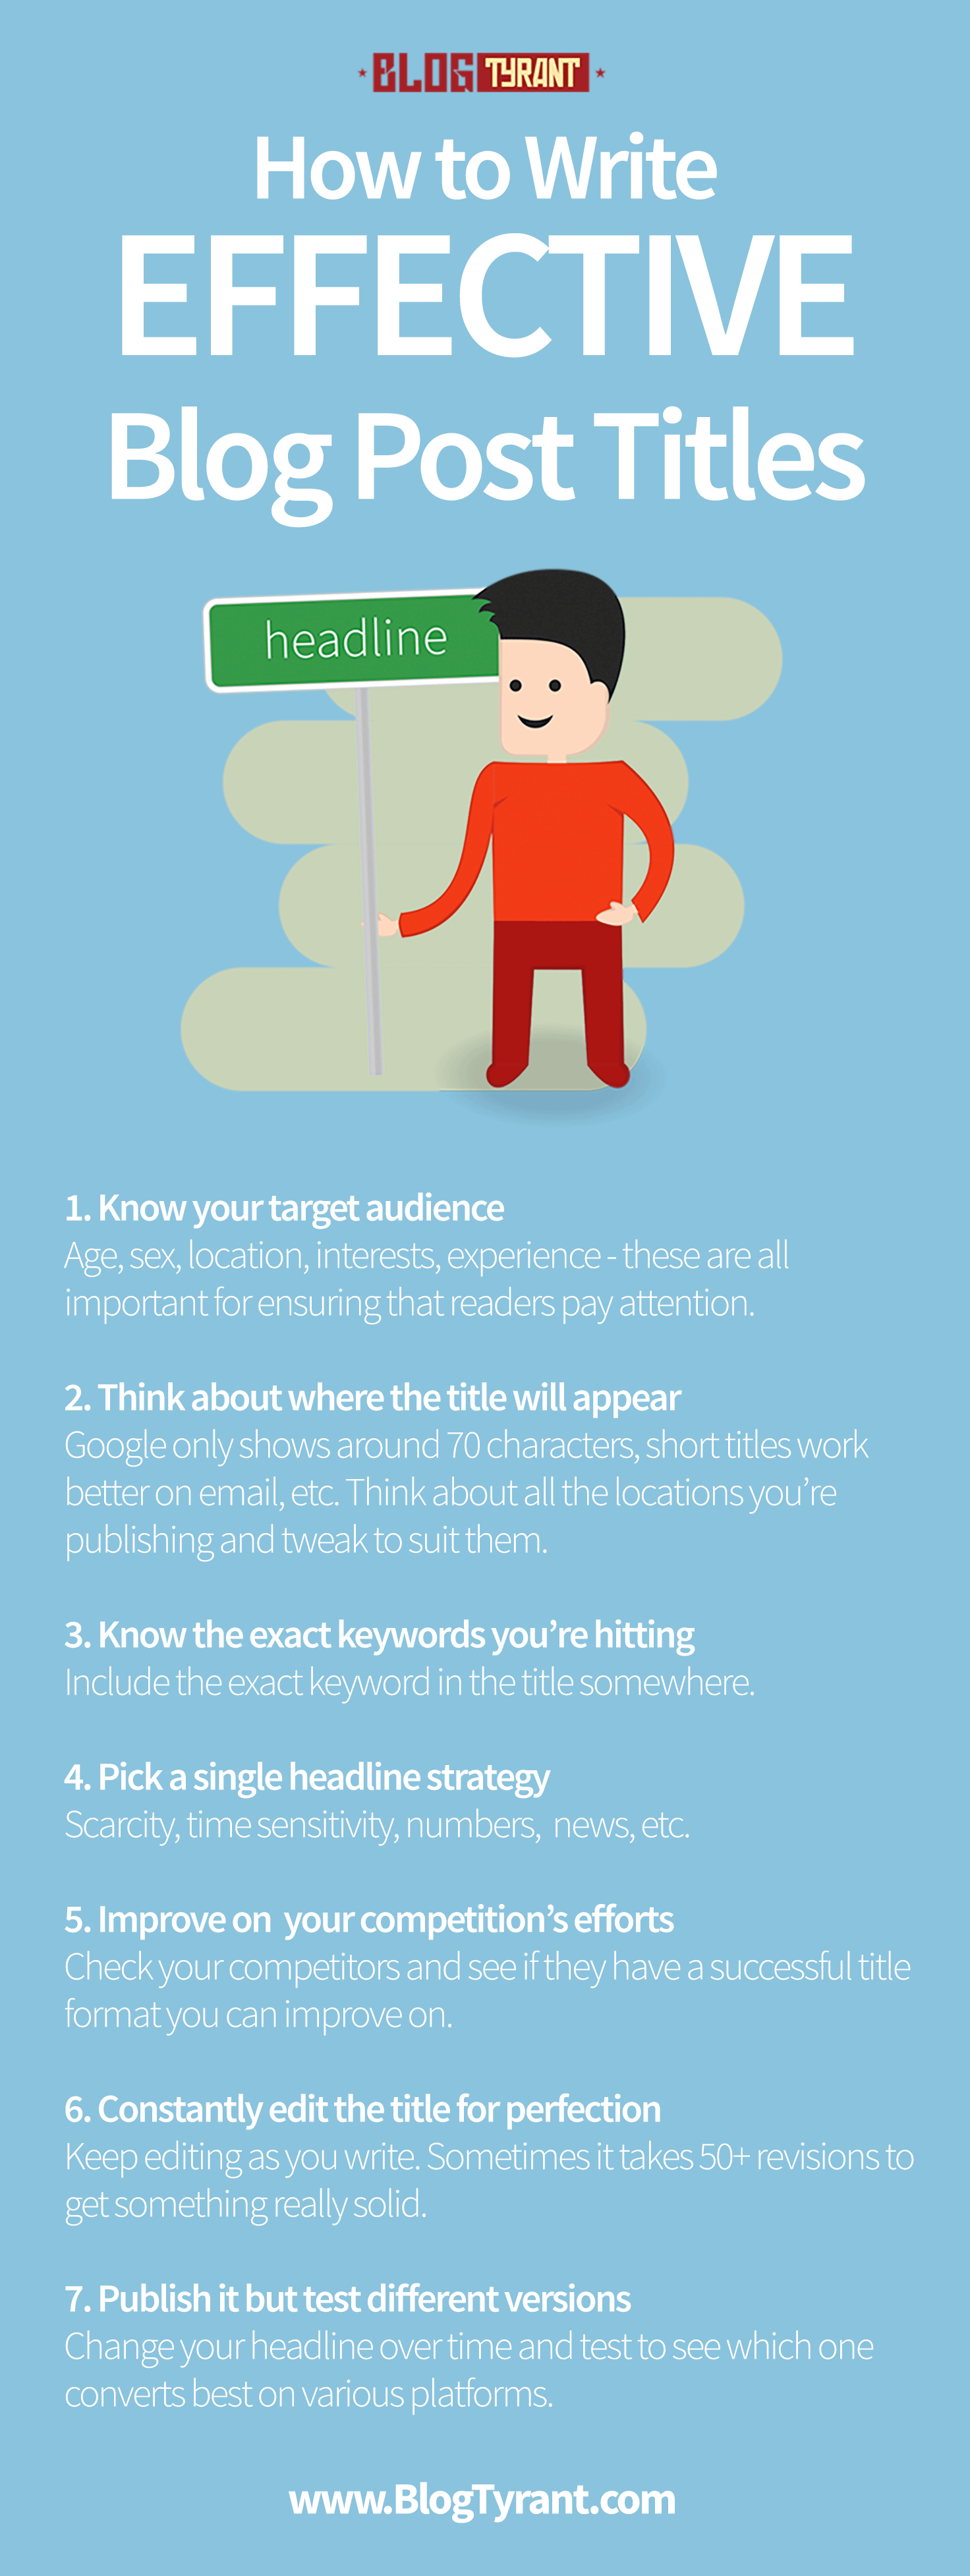 Blog: A Huge Guide On How To Write Effective Post Titles